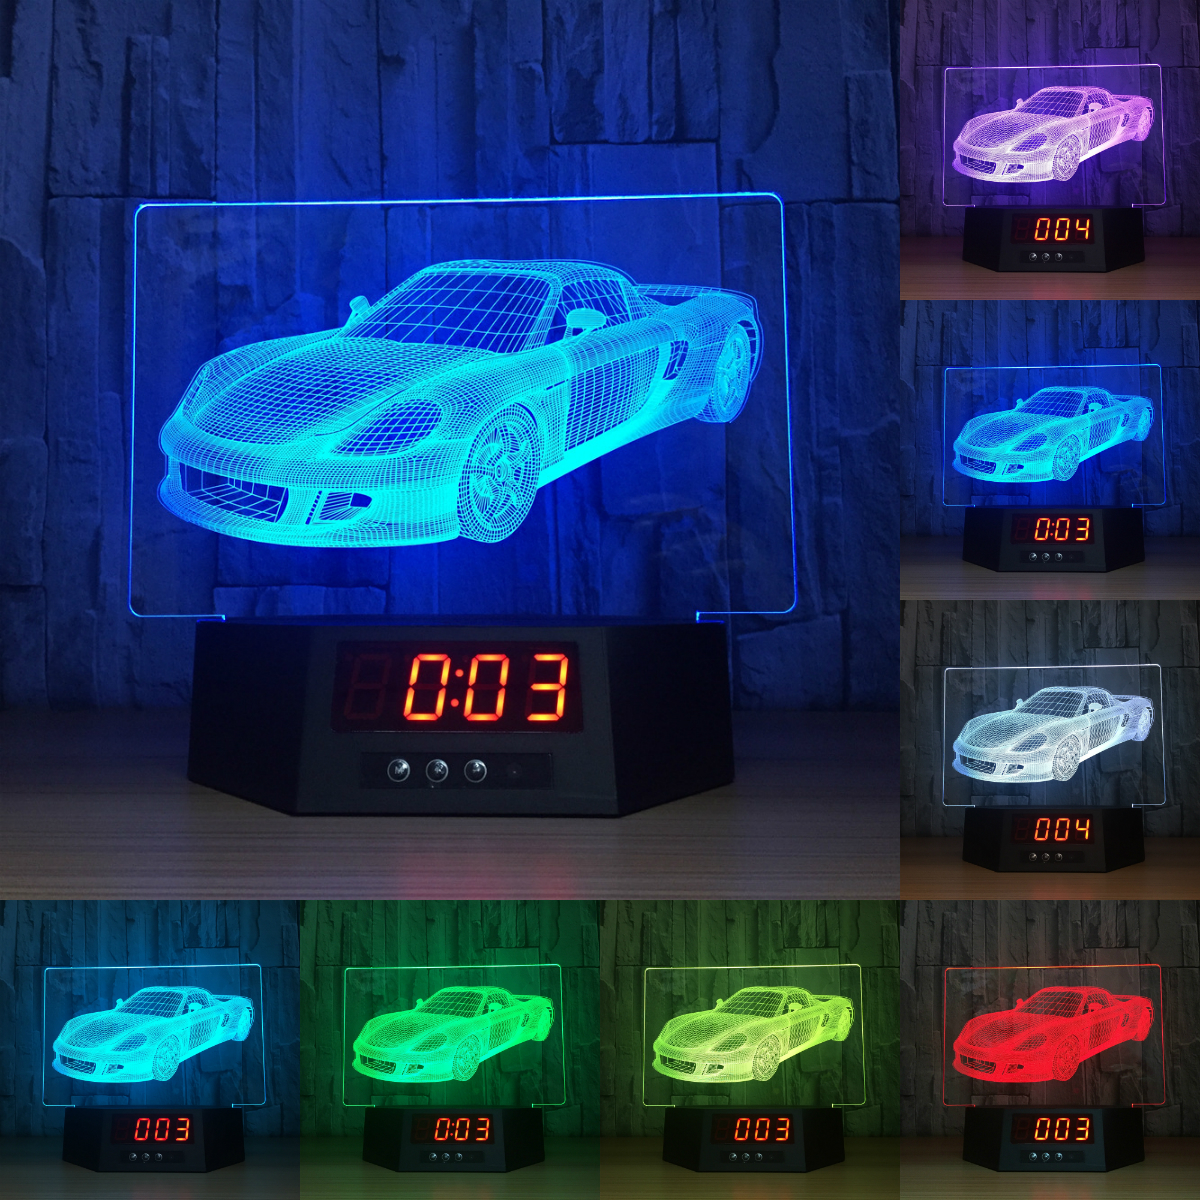 3D LED lights calendar night light touch induction clock remote control lights 7 color changing decorative lights IY803991-25 keyshare dual bulb night vision led light kit for remote control drones